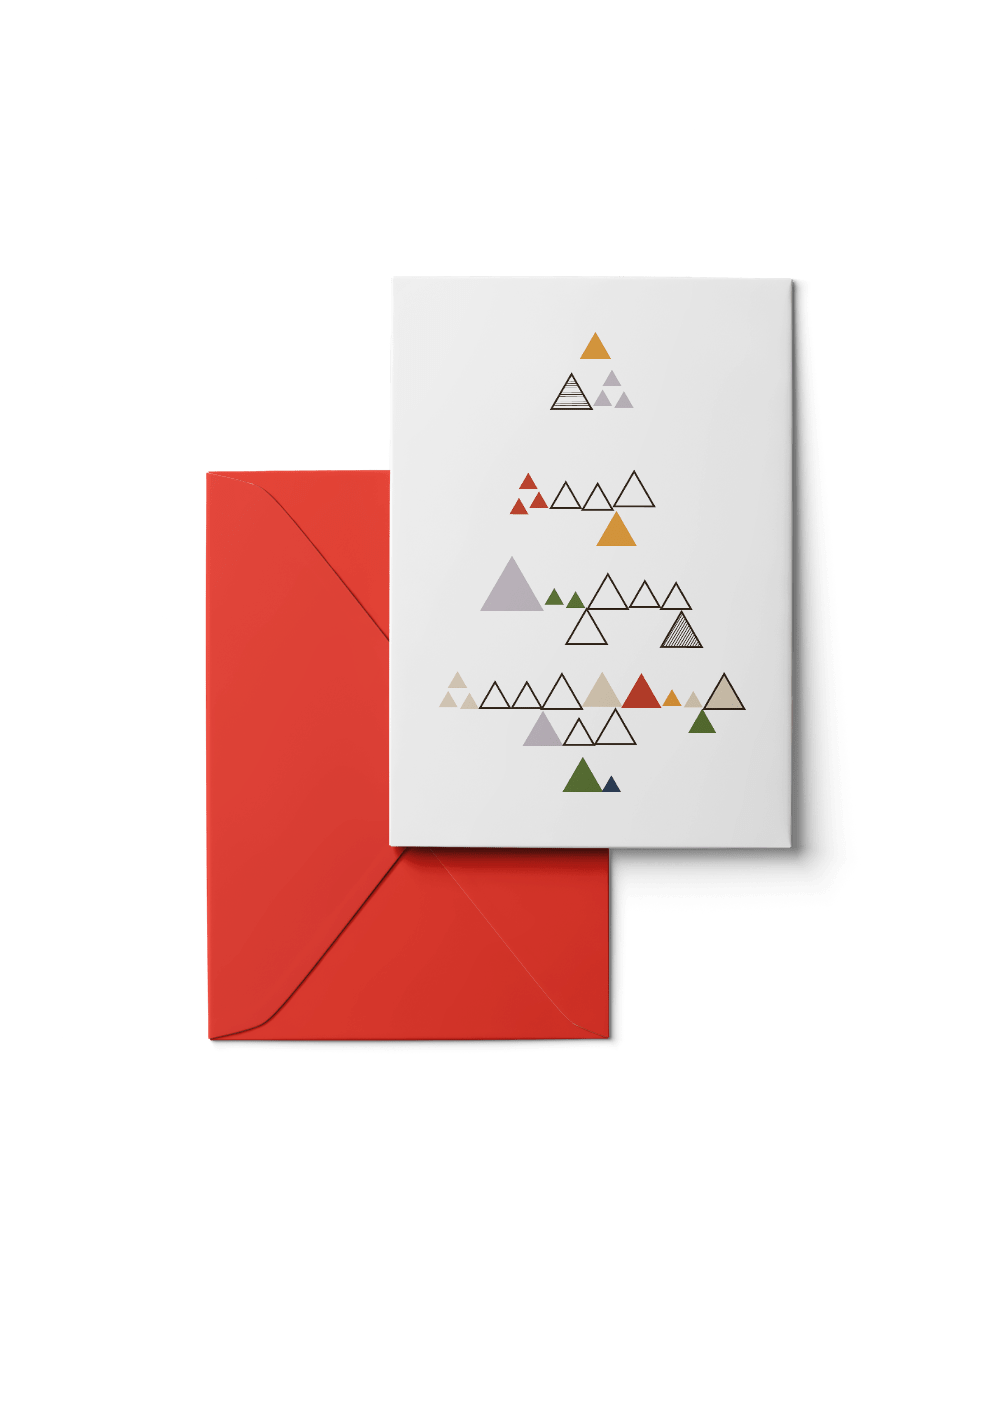 Custom Wooded Hills, Multi, 6 Karten Set by Karten Design Fabrik. Supplier of designer Greeting Cards, Gift Wrap, Christmas Cards & Invitations to leading design stores including Connox, Modulor, Magazin & Manufactum.